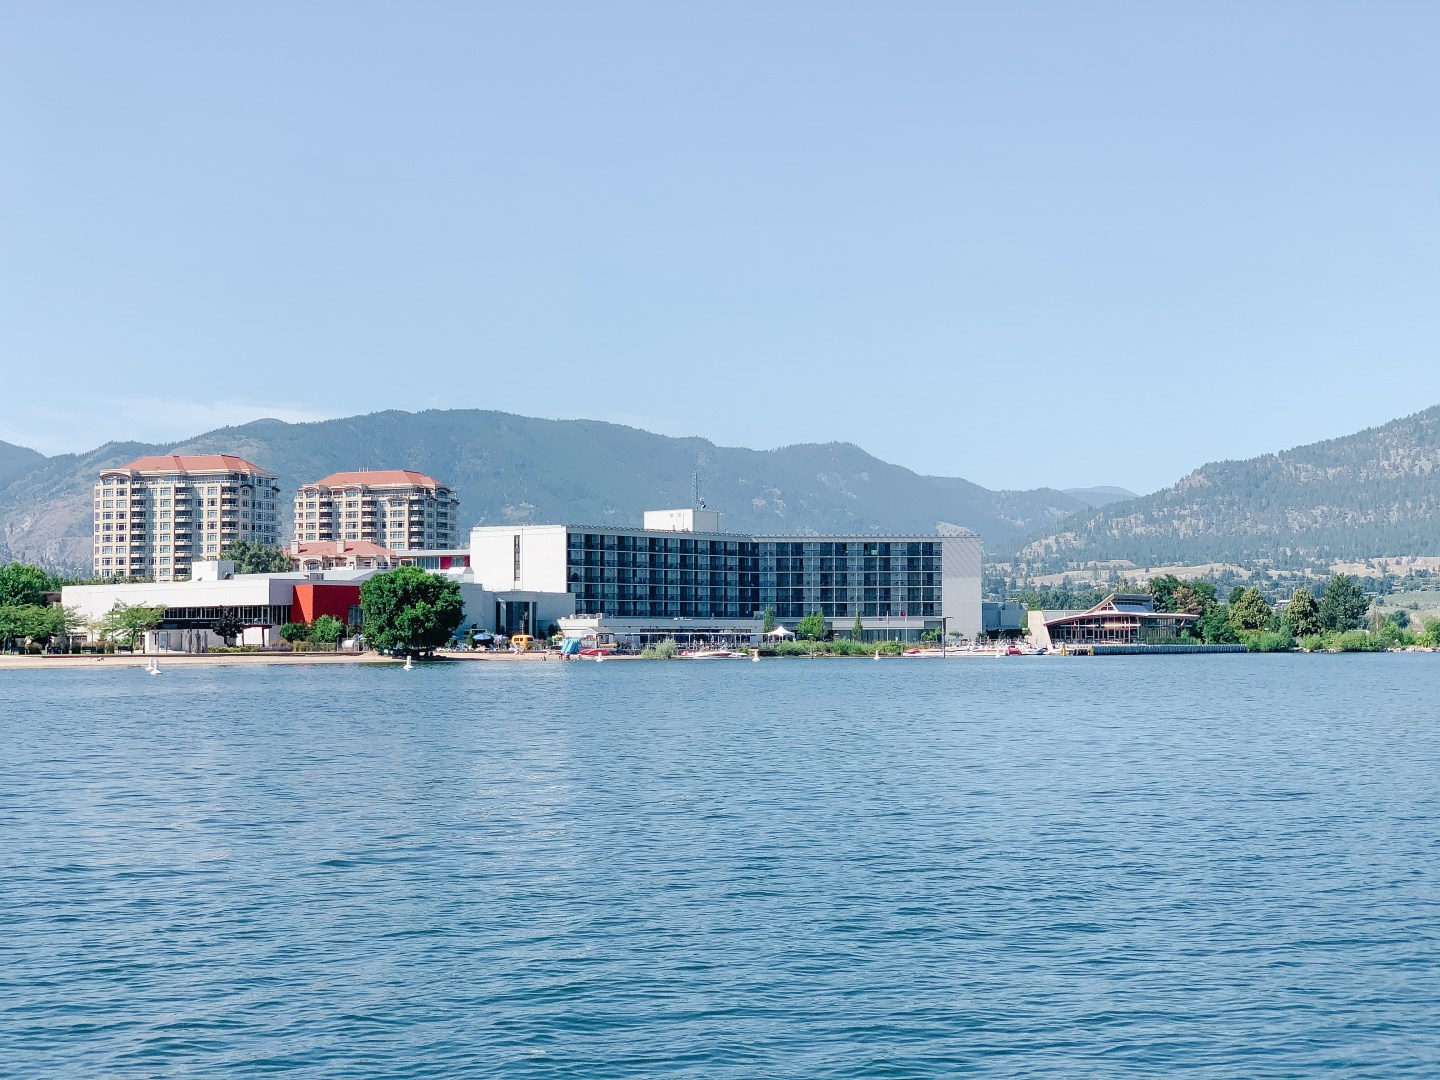 Our visit to Penticton Lakeside